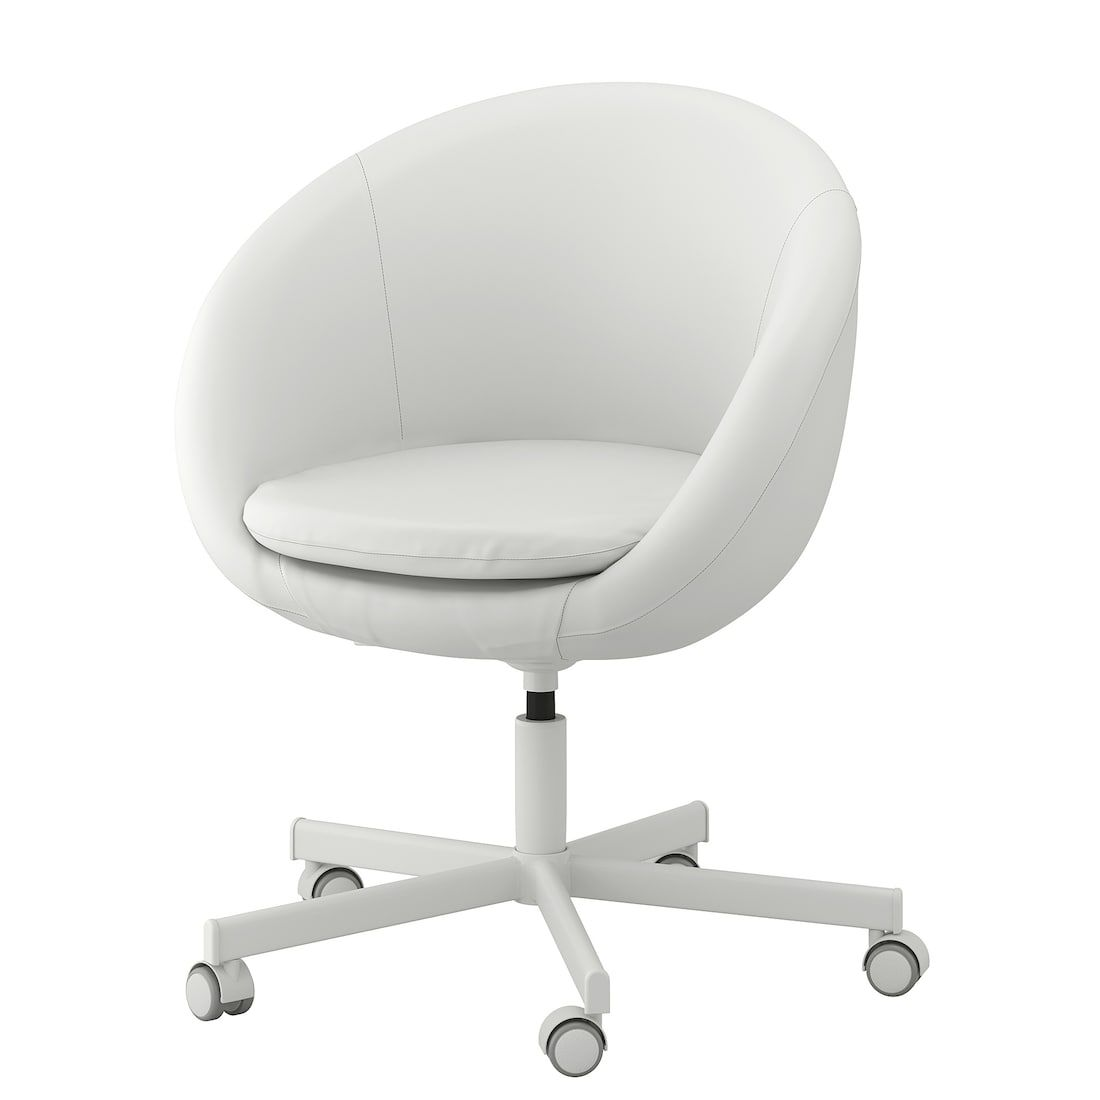 Astonishing Skruvsta Swivel Chair Ysane White In 2019 Swivel Chair Pabps2019 Chair Design Images Pabps2019Com